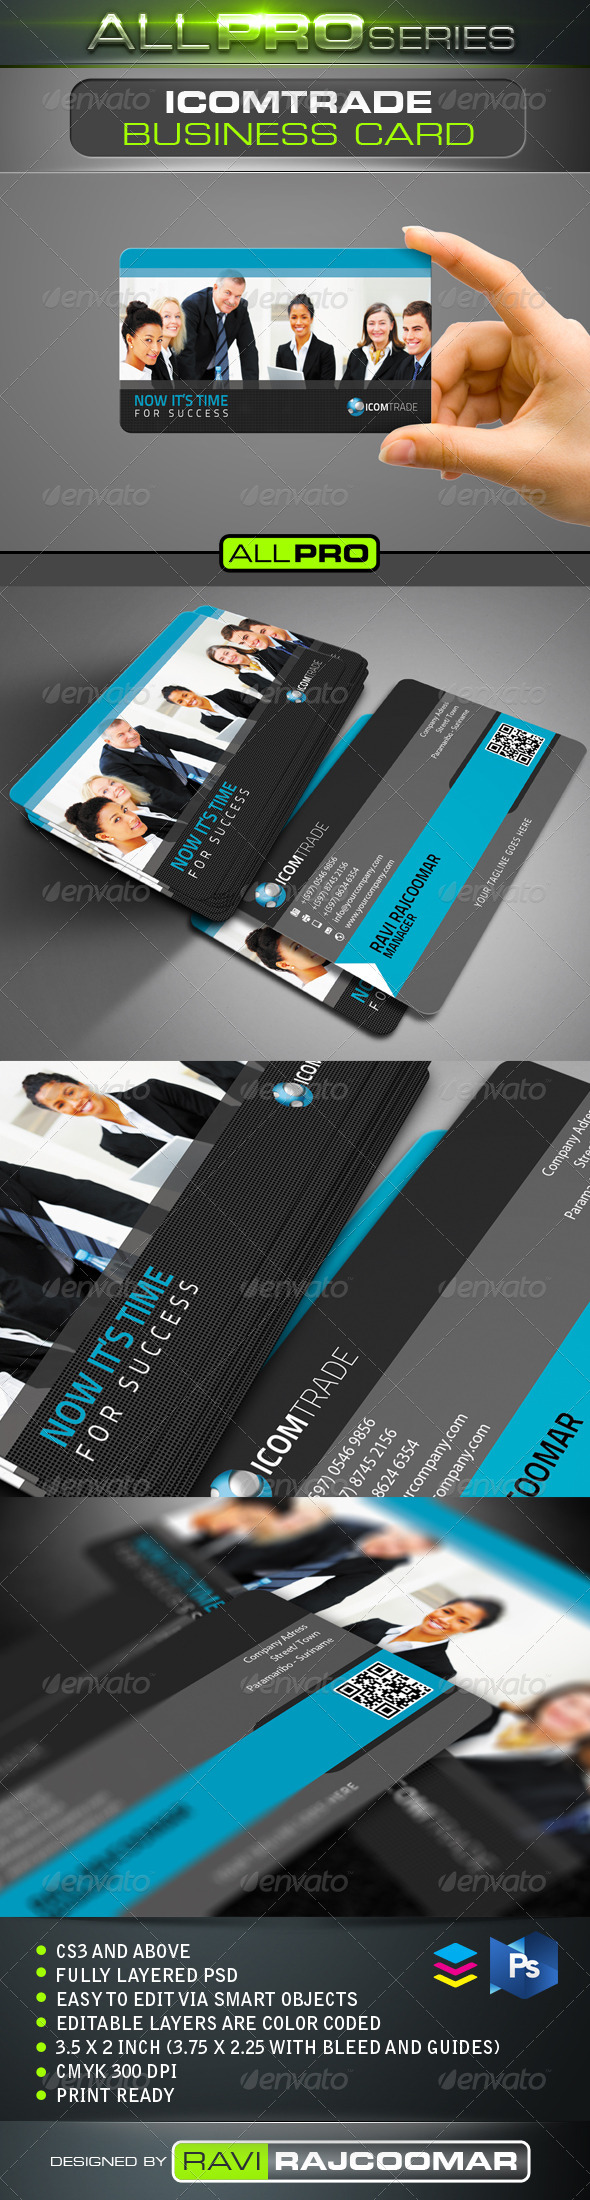 Icomtrade Business Card - Business Cards Print Templates